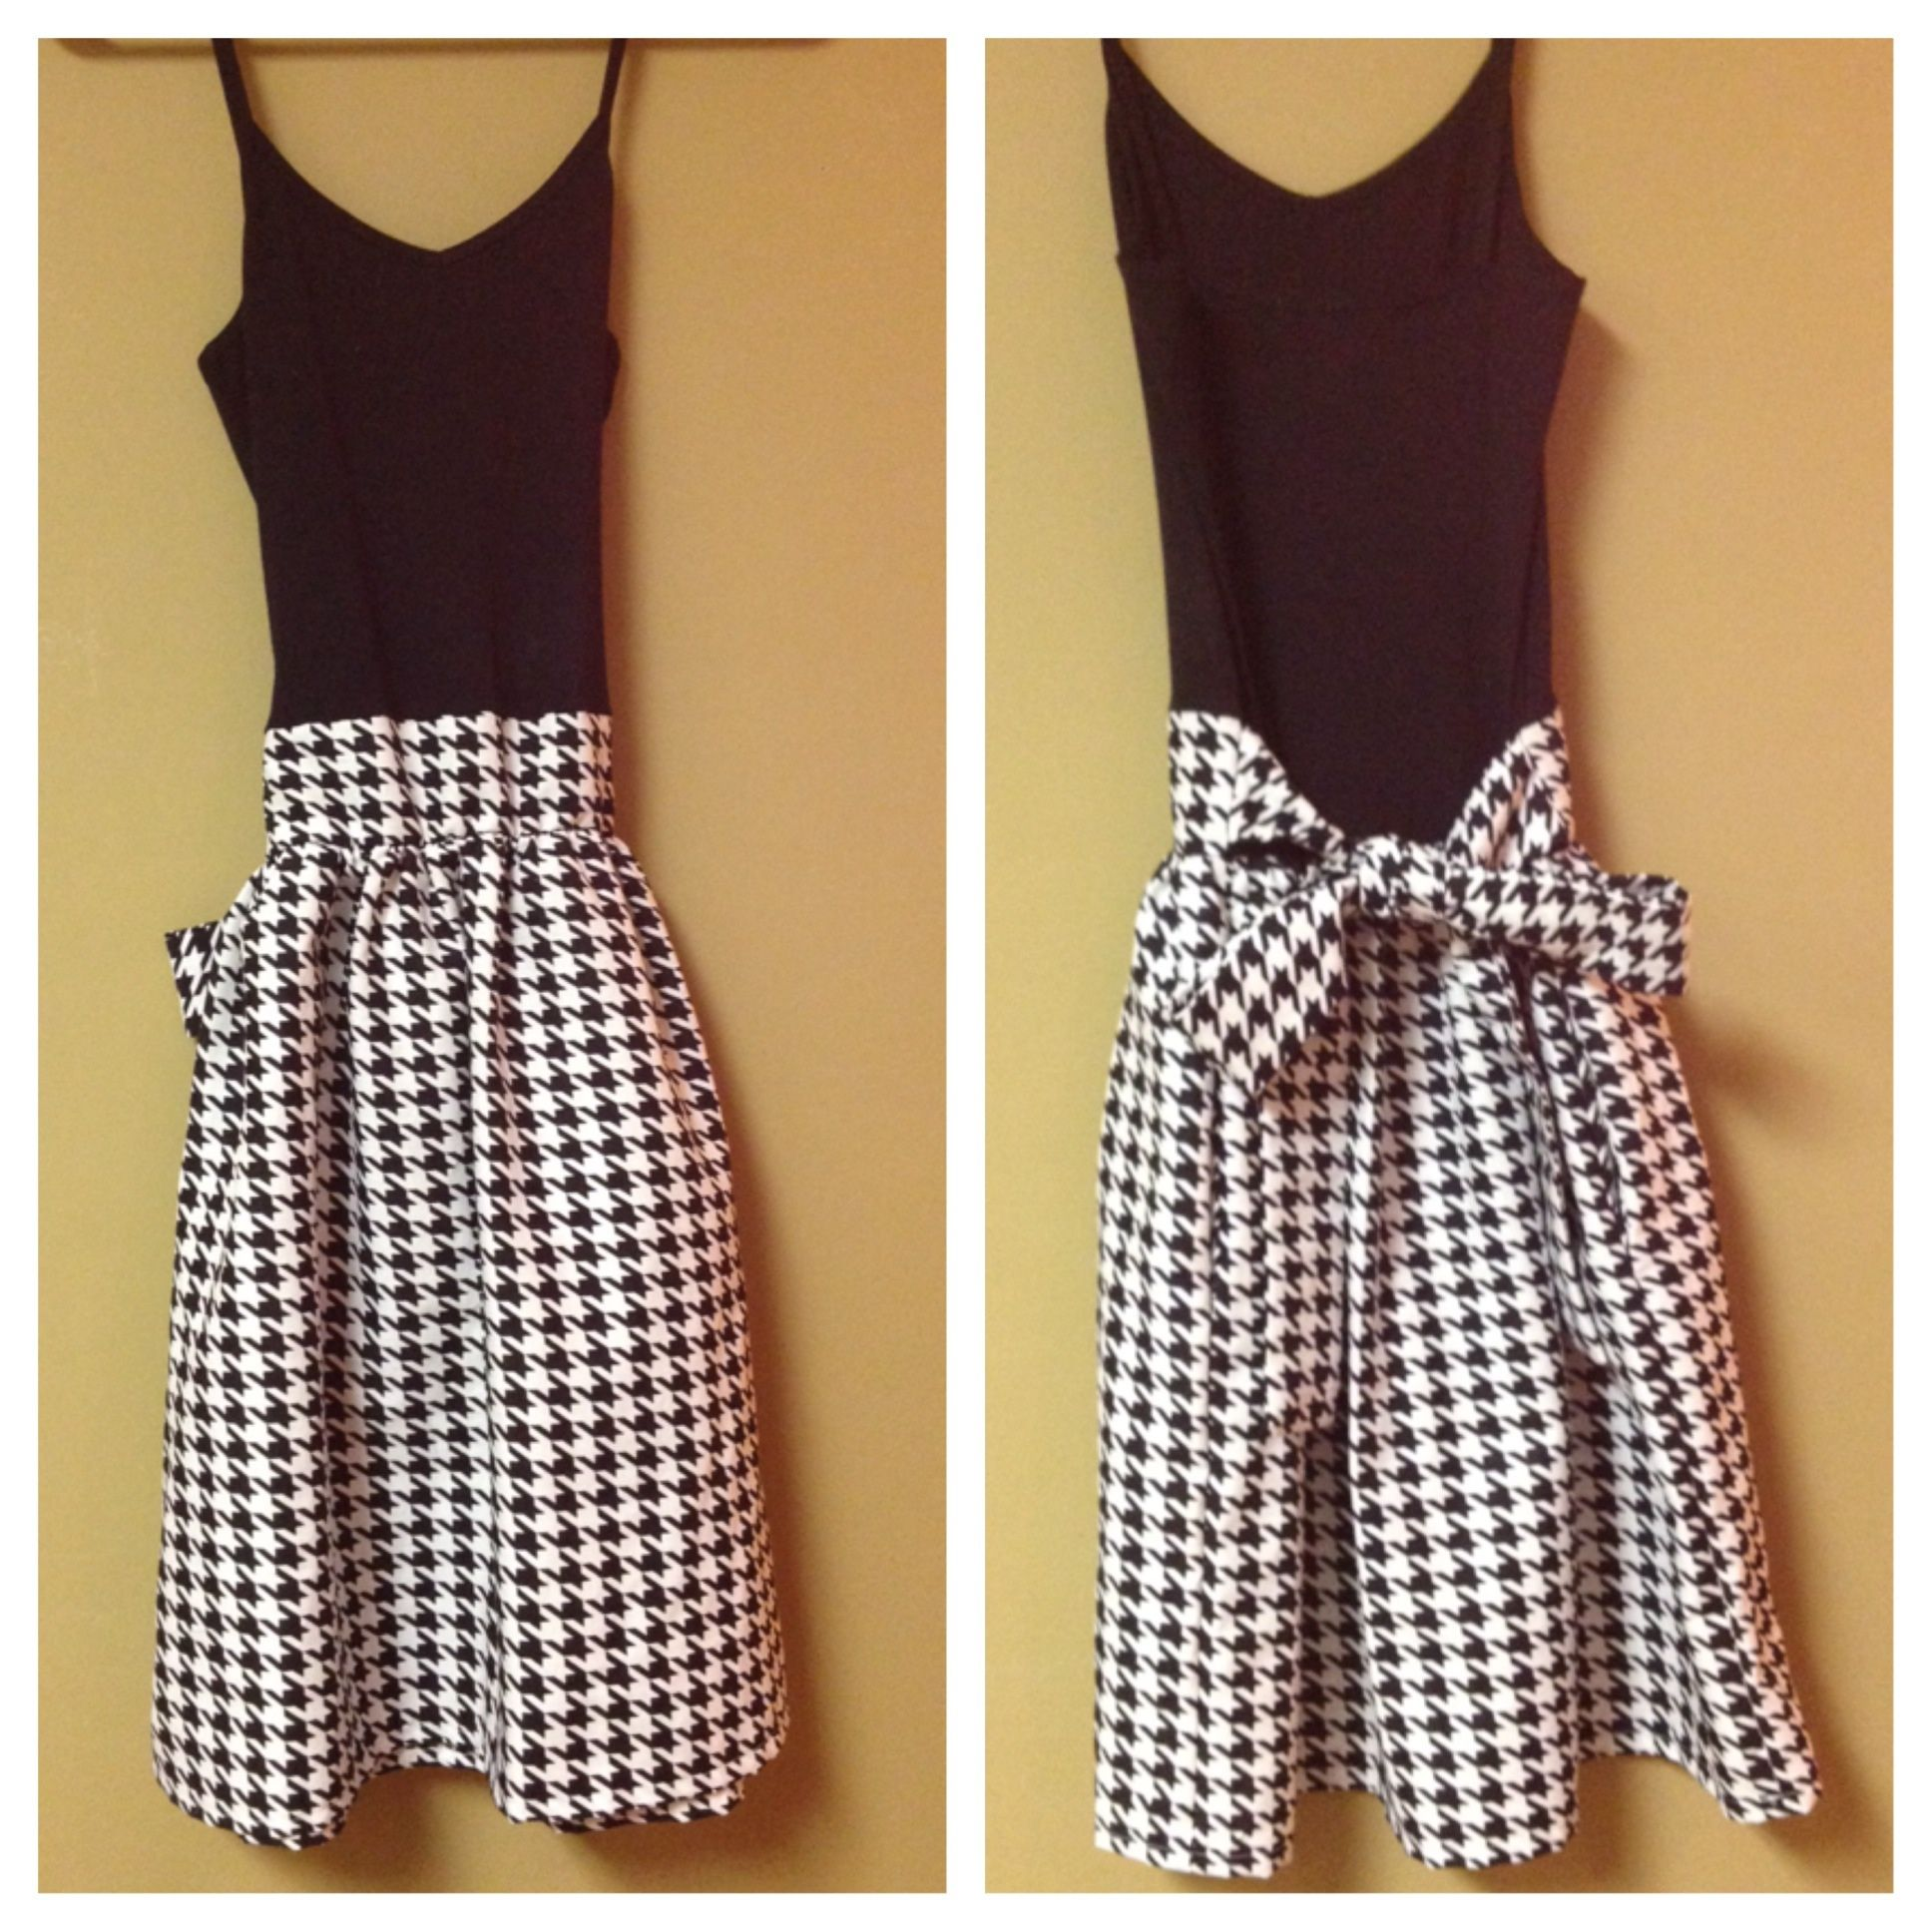 16248b0e93e Houndstooth dress with pockets! Pink Anchor Clothing Maternity and kid  sizes available.